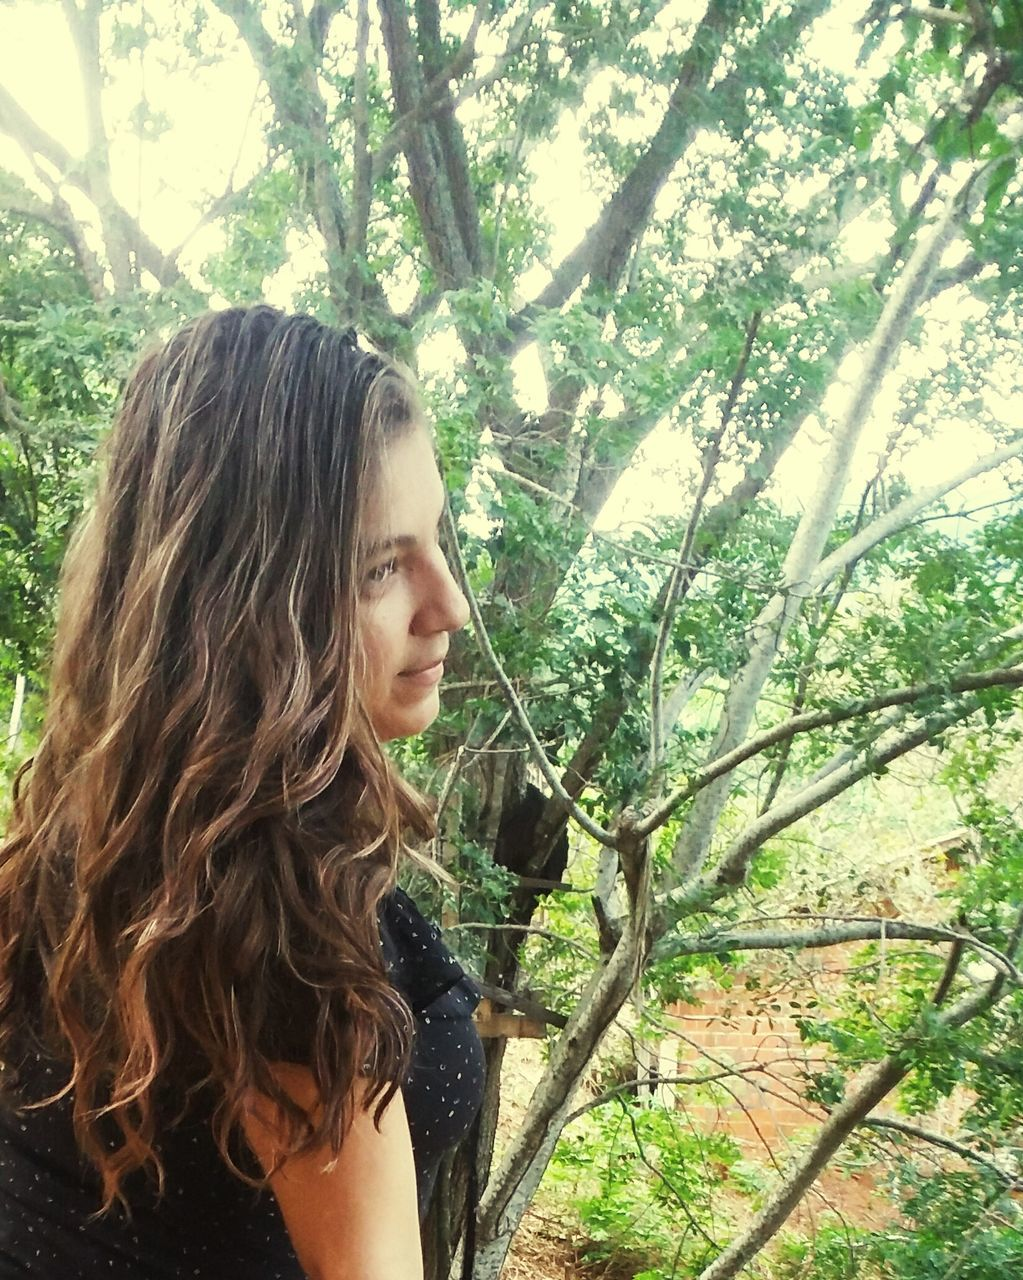 tree, real people, one person, young adult, leisure activity, young women, lifestyles, nature, day, forest, standing, long hair, outdoors, water, side view, tree trunk, beautiful woman, women, branch, beauty in nature